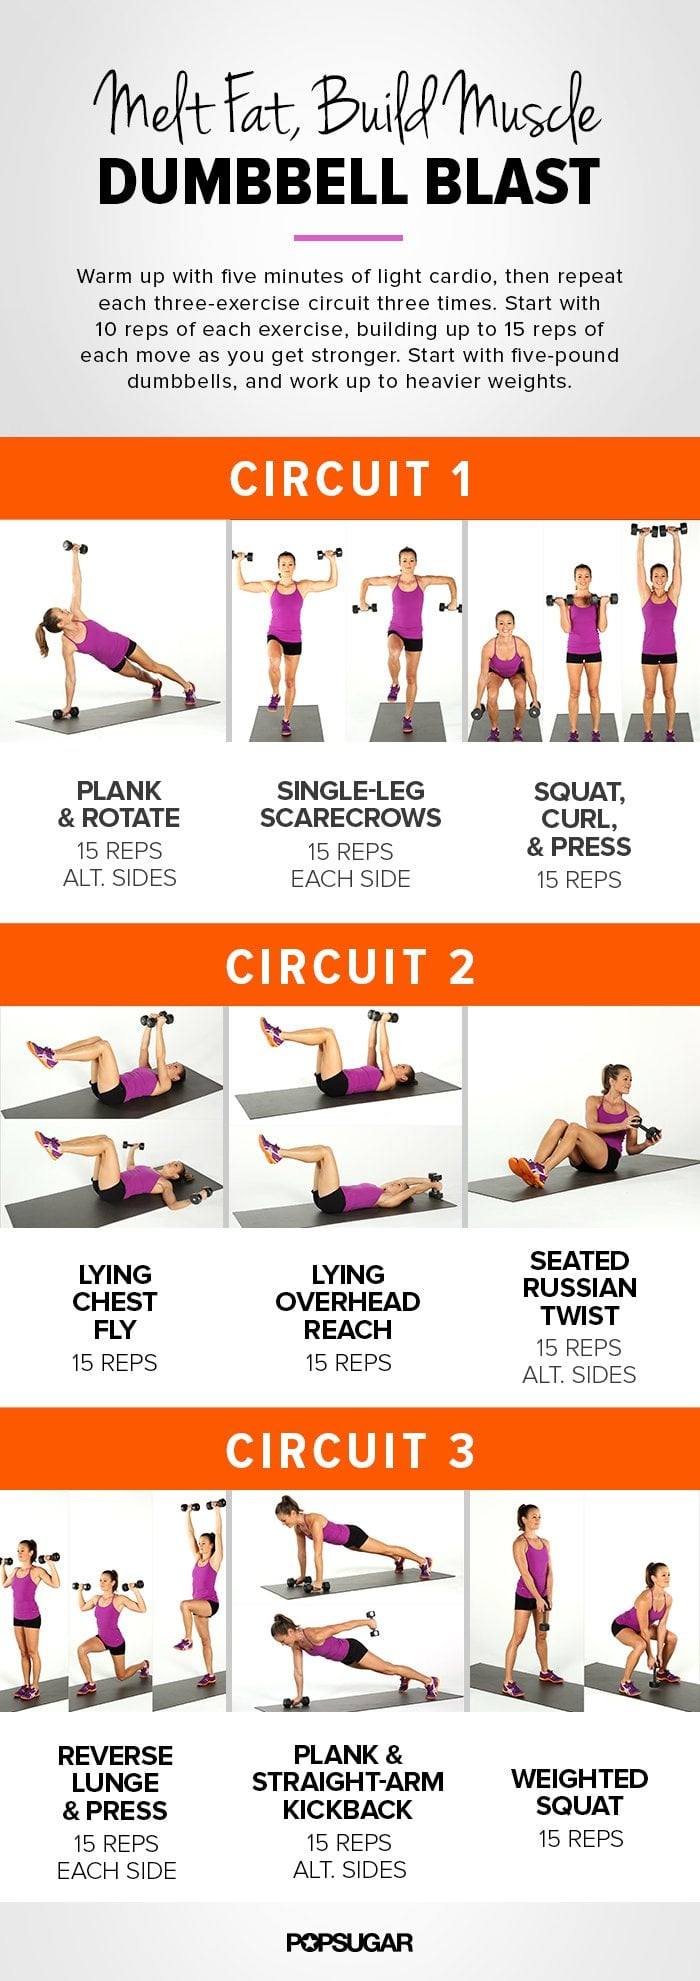 Revered image with printable workouts